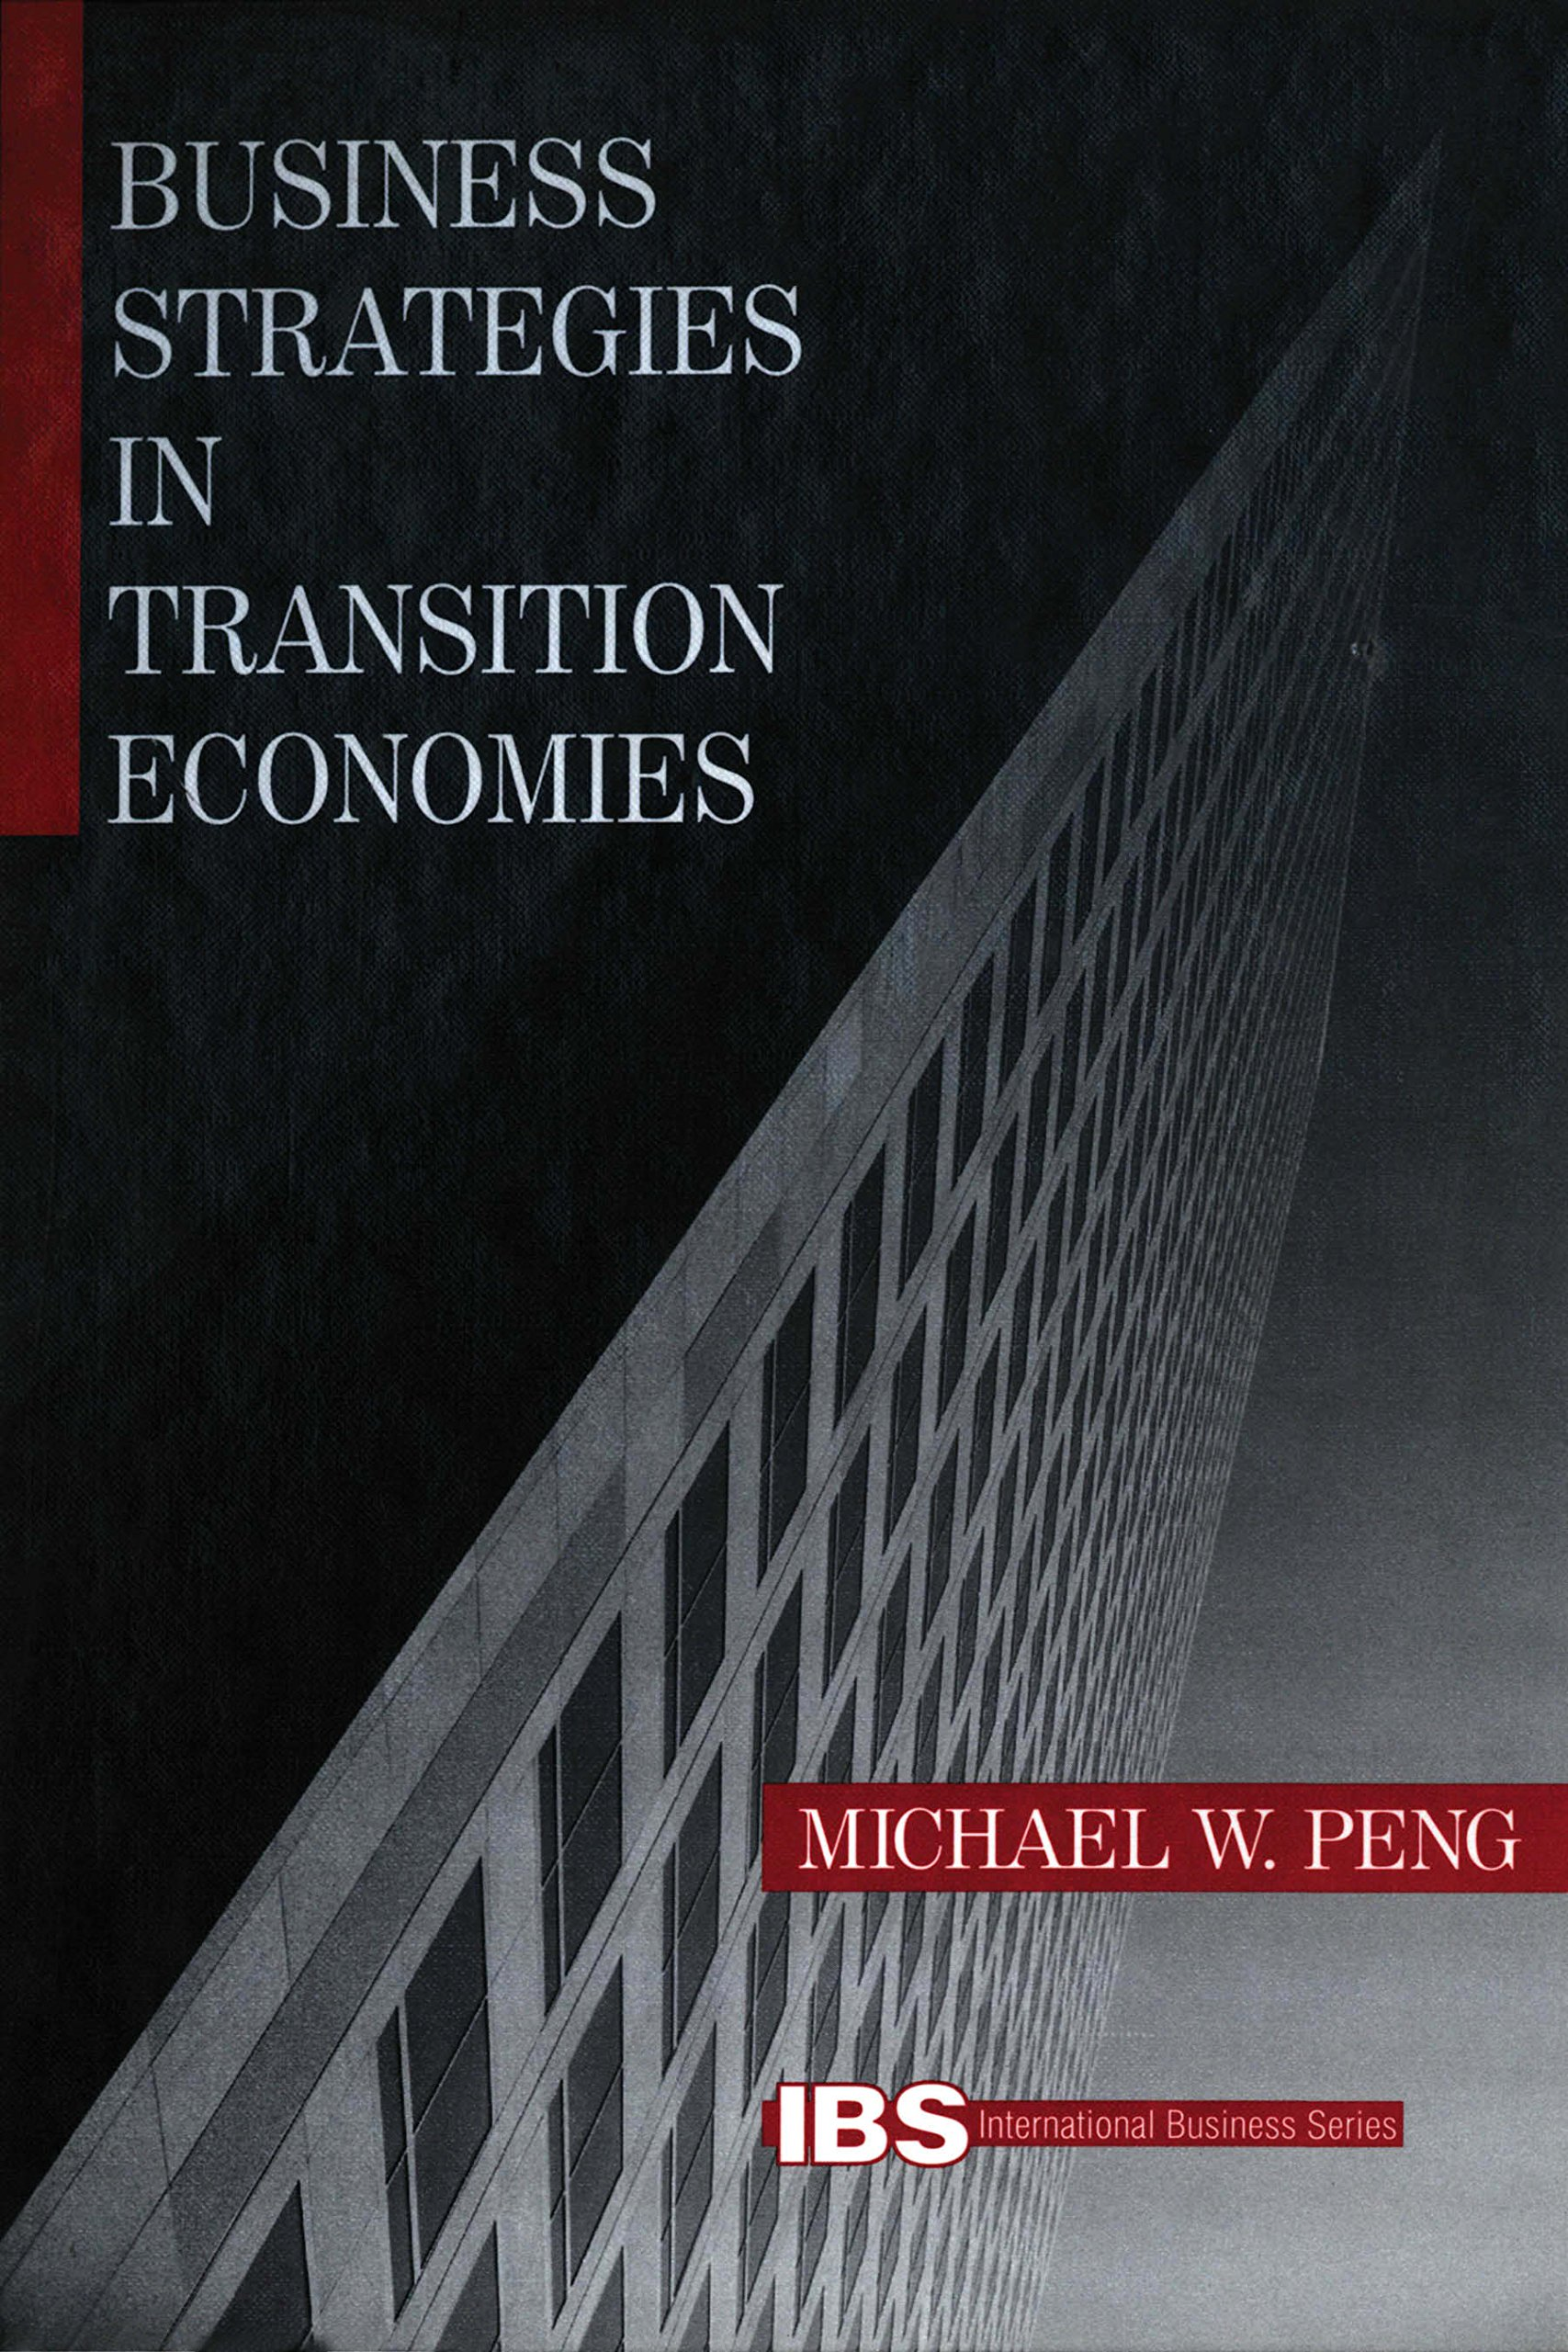 Business Strategies in Transition Economies (International Business series)